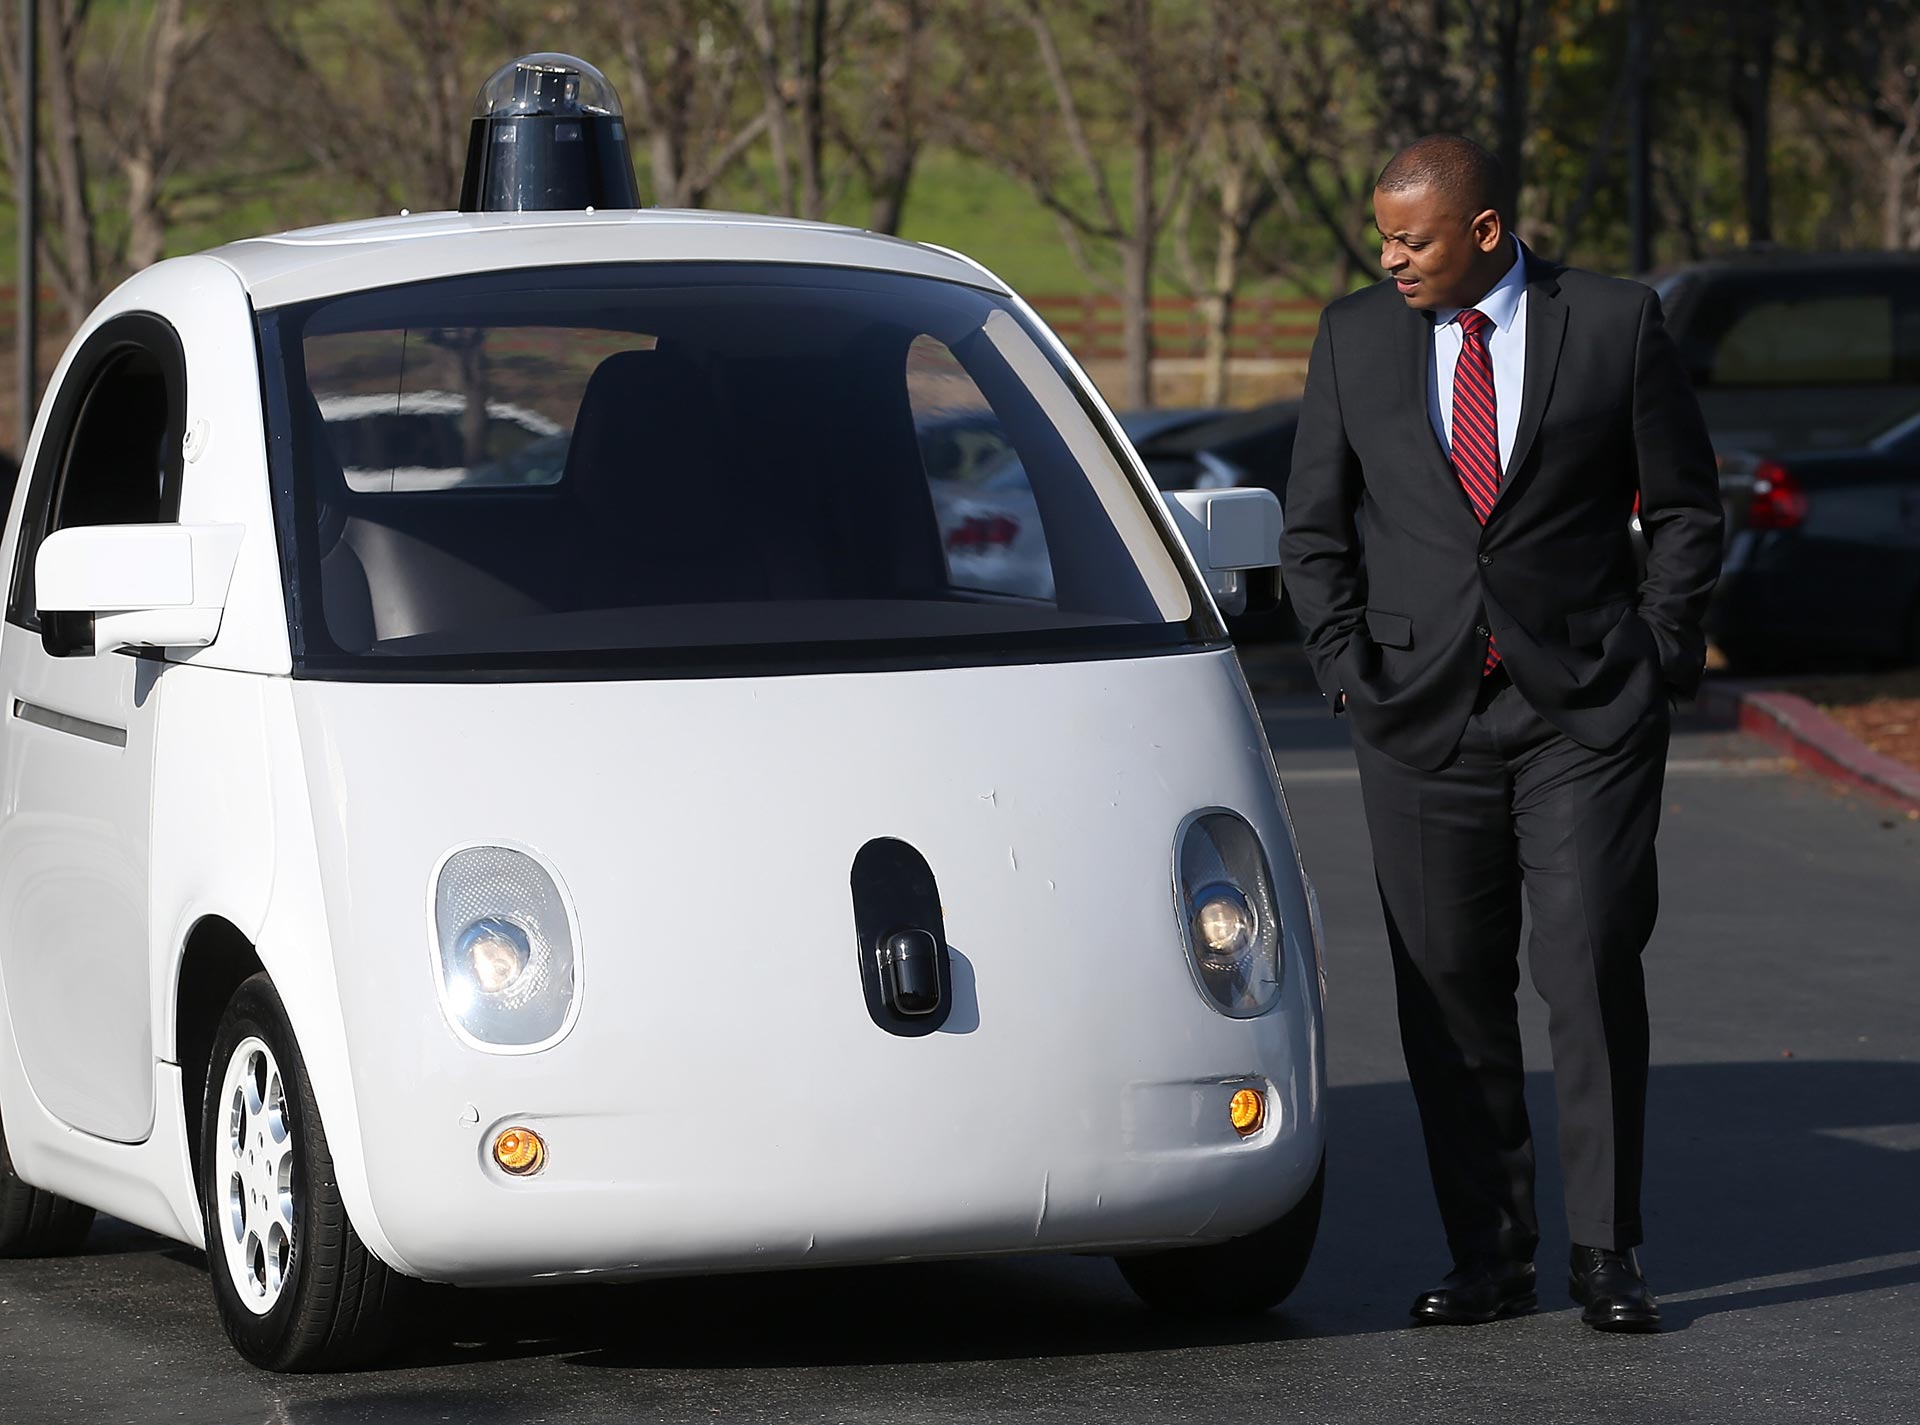 U.S. Transportation Secretary Anthony Foxx inspects a Google self-driving car at the Google headquarters on February 2, 2015.